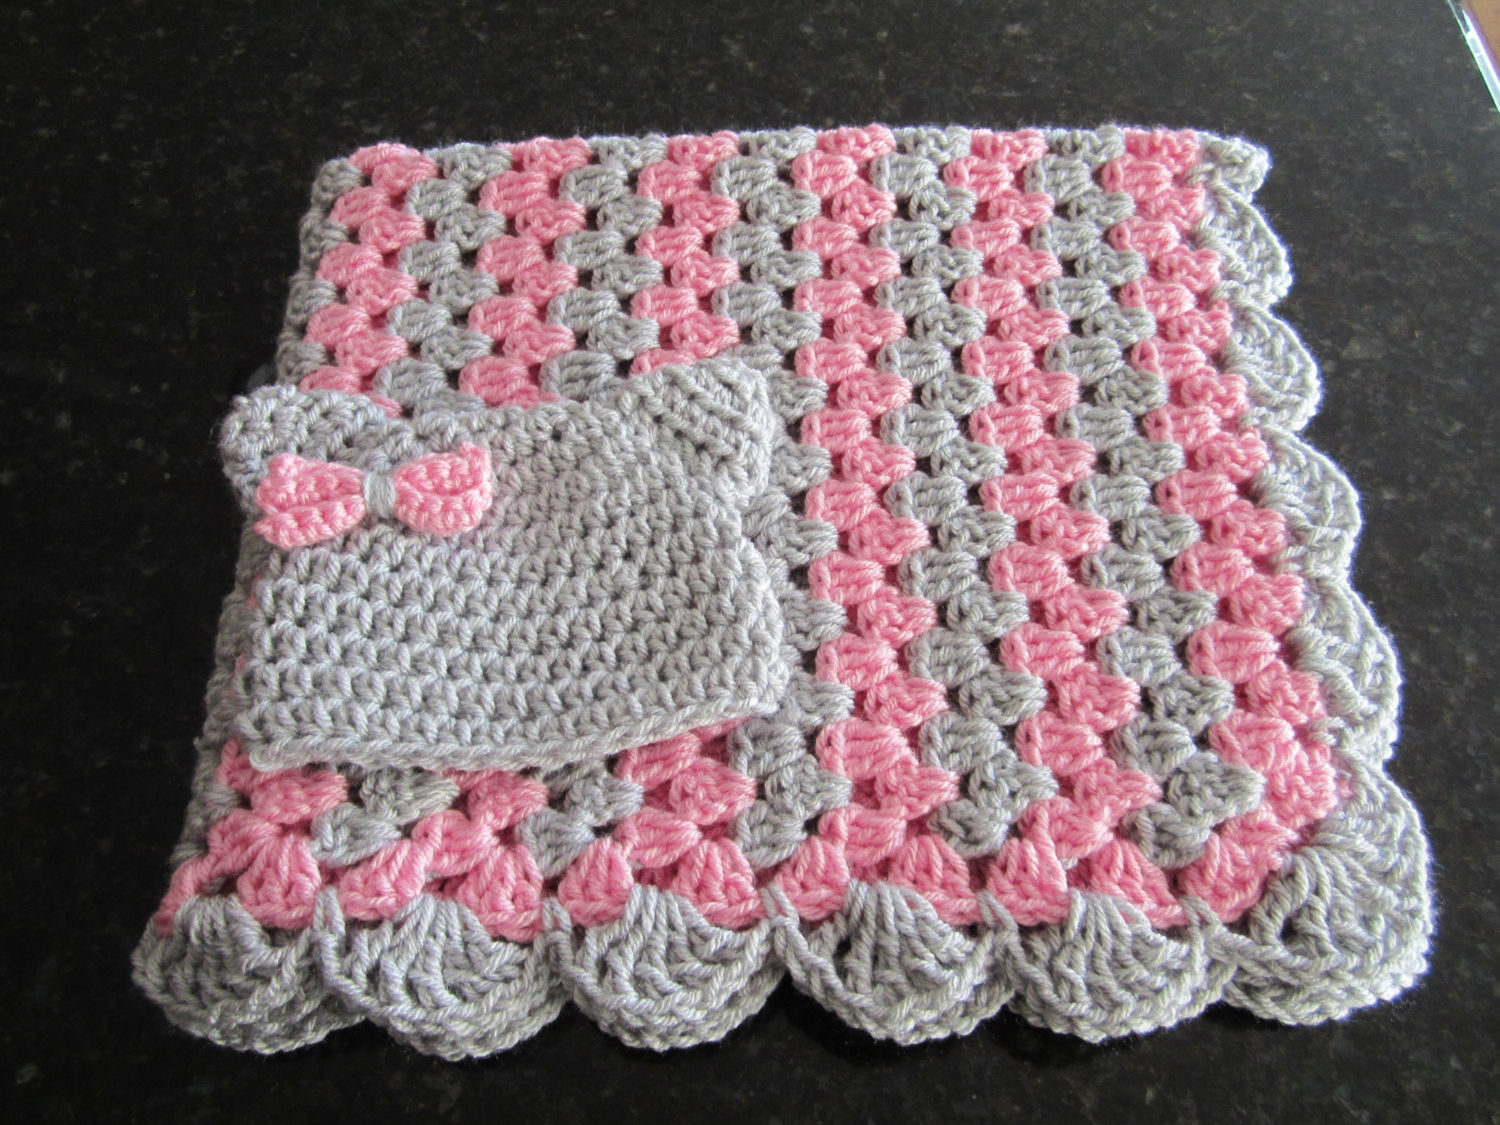 New Baby Girl Blanket Crochet Patterns Crochet and Knit Crochet for Girls Of Marvelous 40 Pics Crochet for Girls